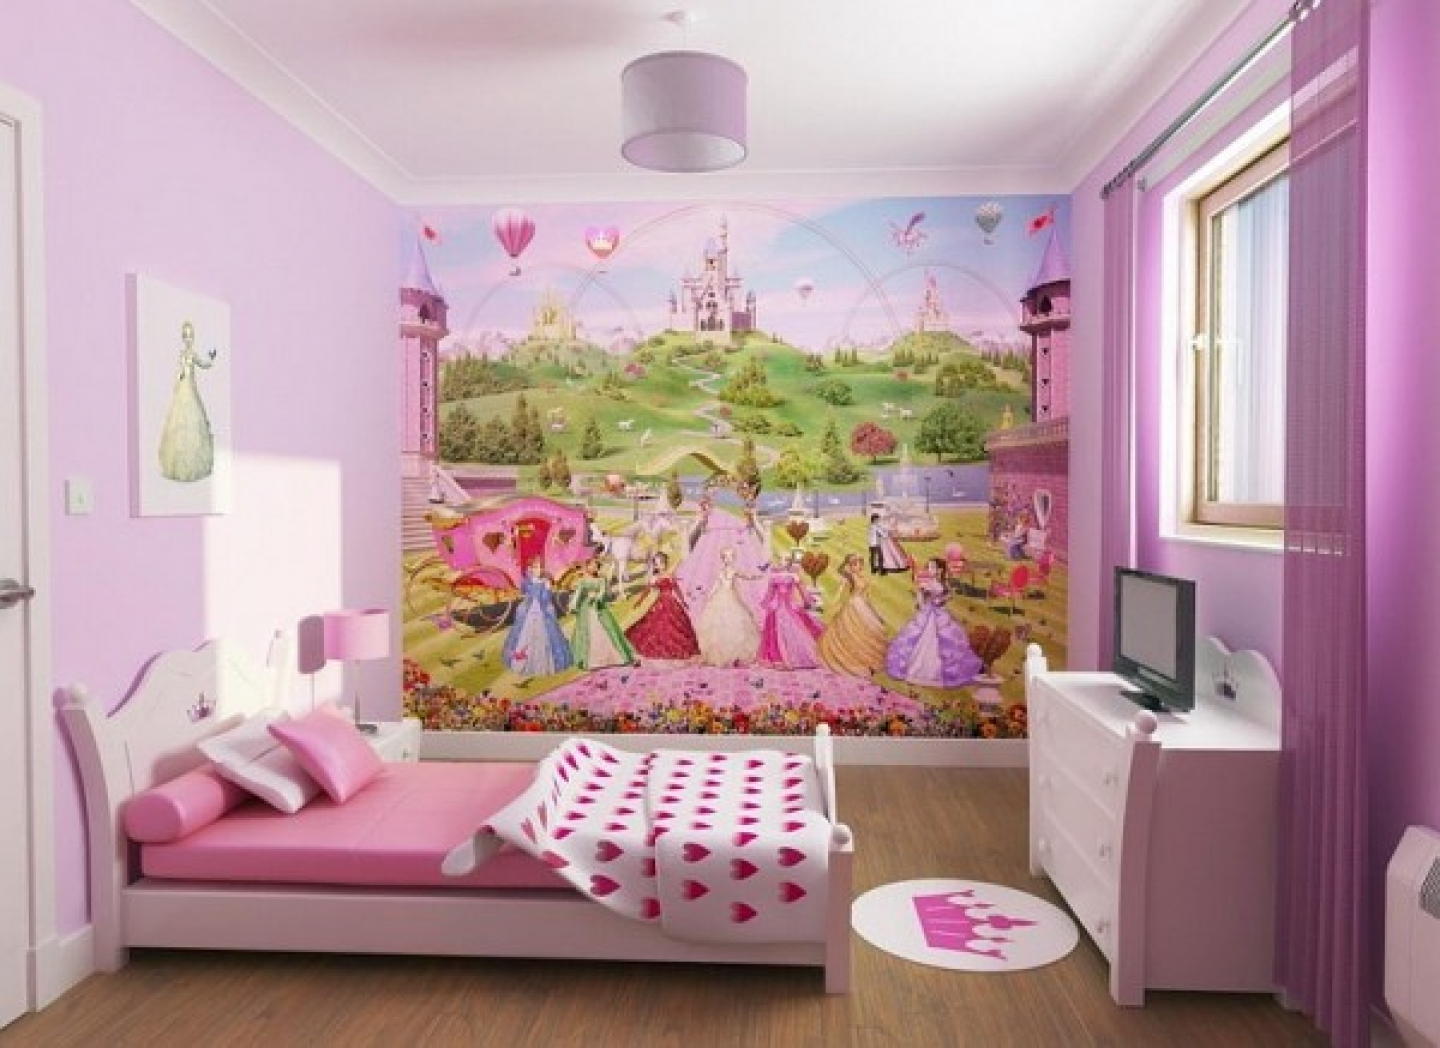 Modern And Beautiful Teen Girls Bedroom Decorating Ideas On | Home Wallpaper